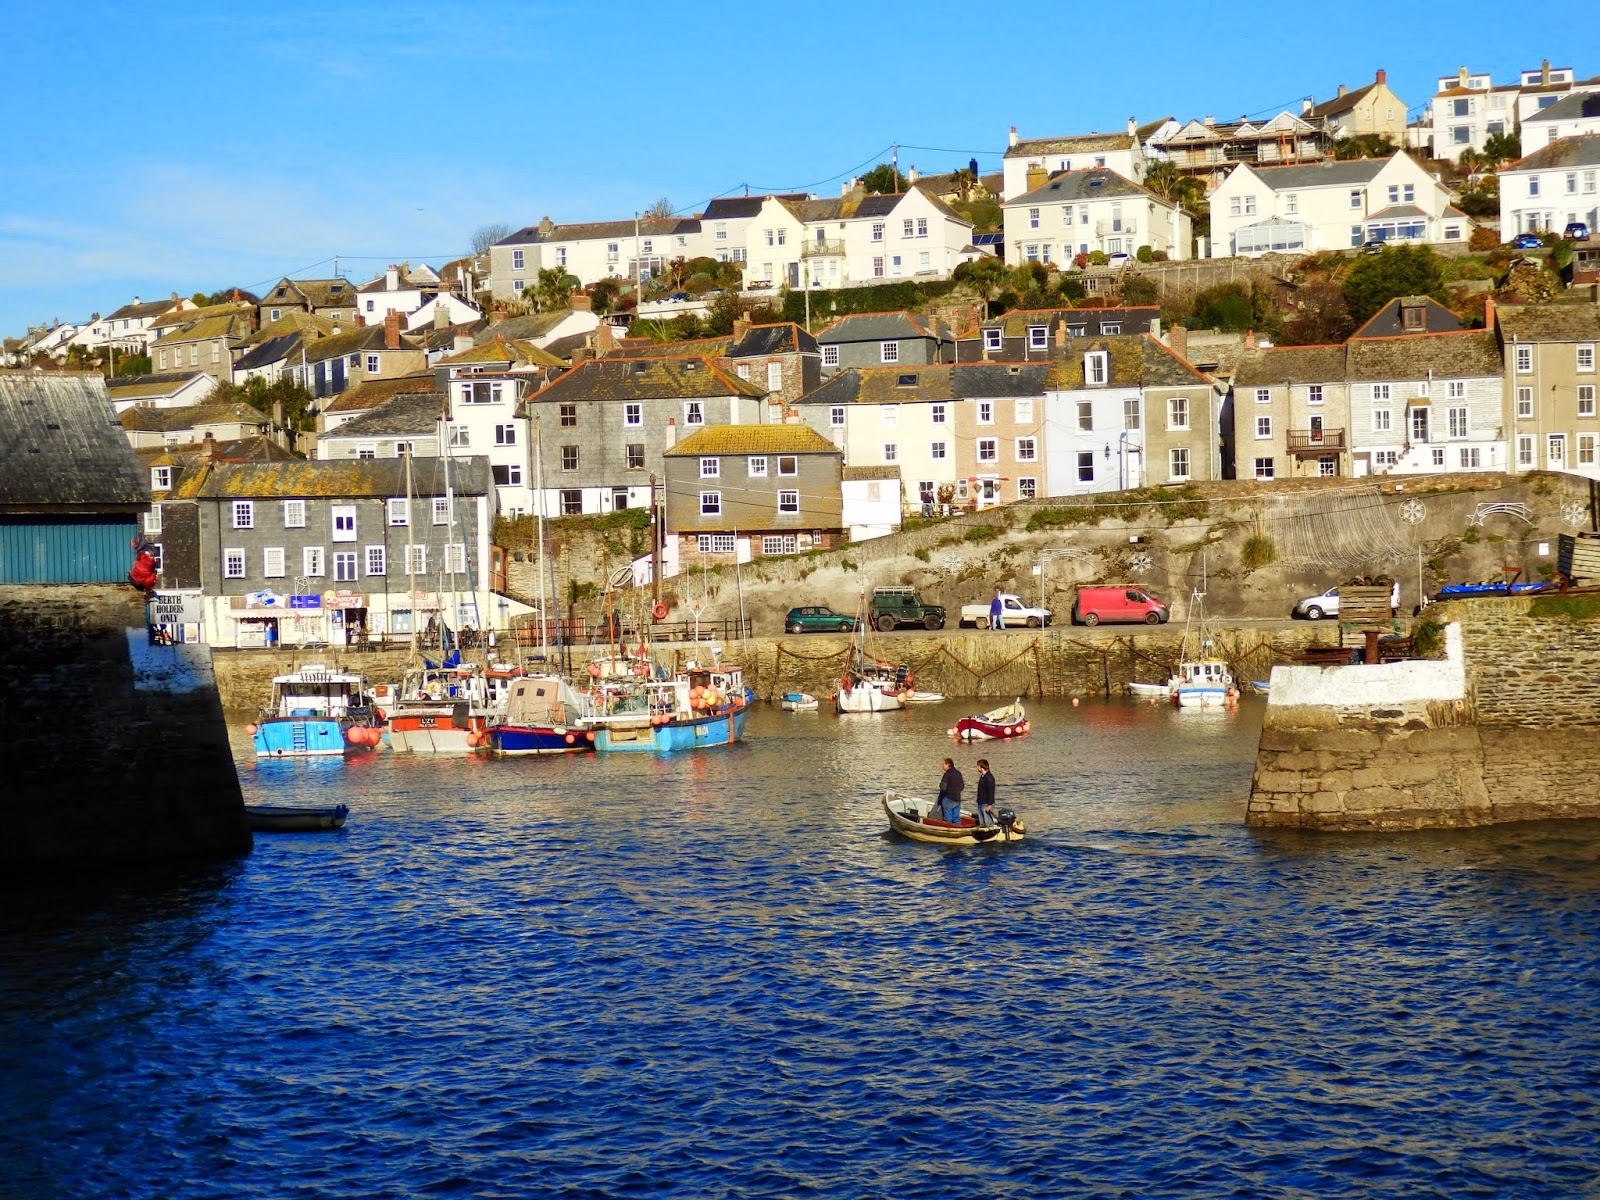 Entrance to inner harbour Mavagissey